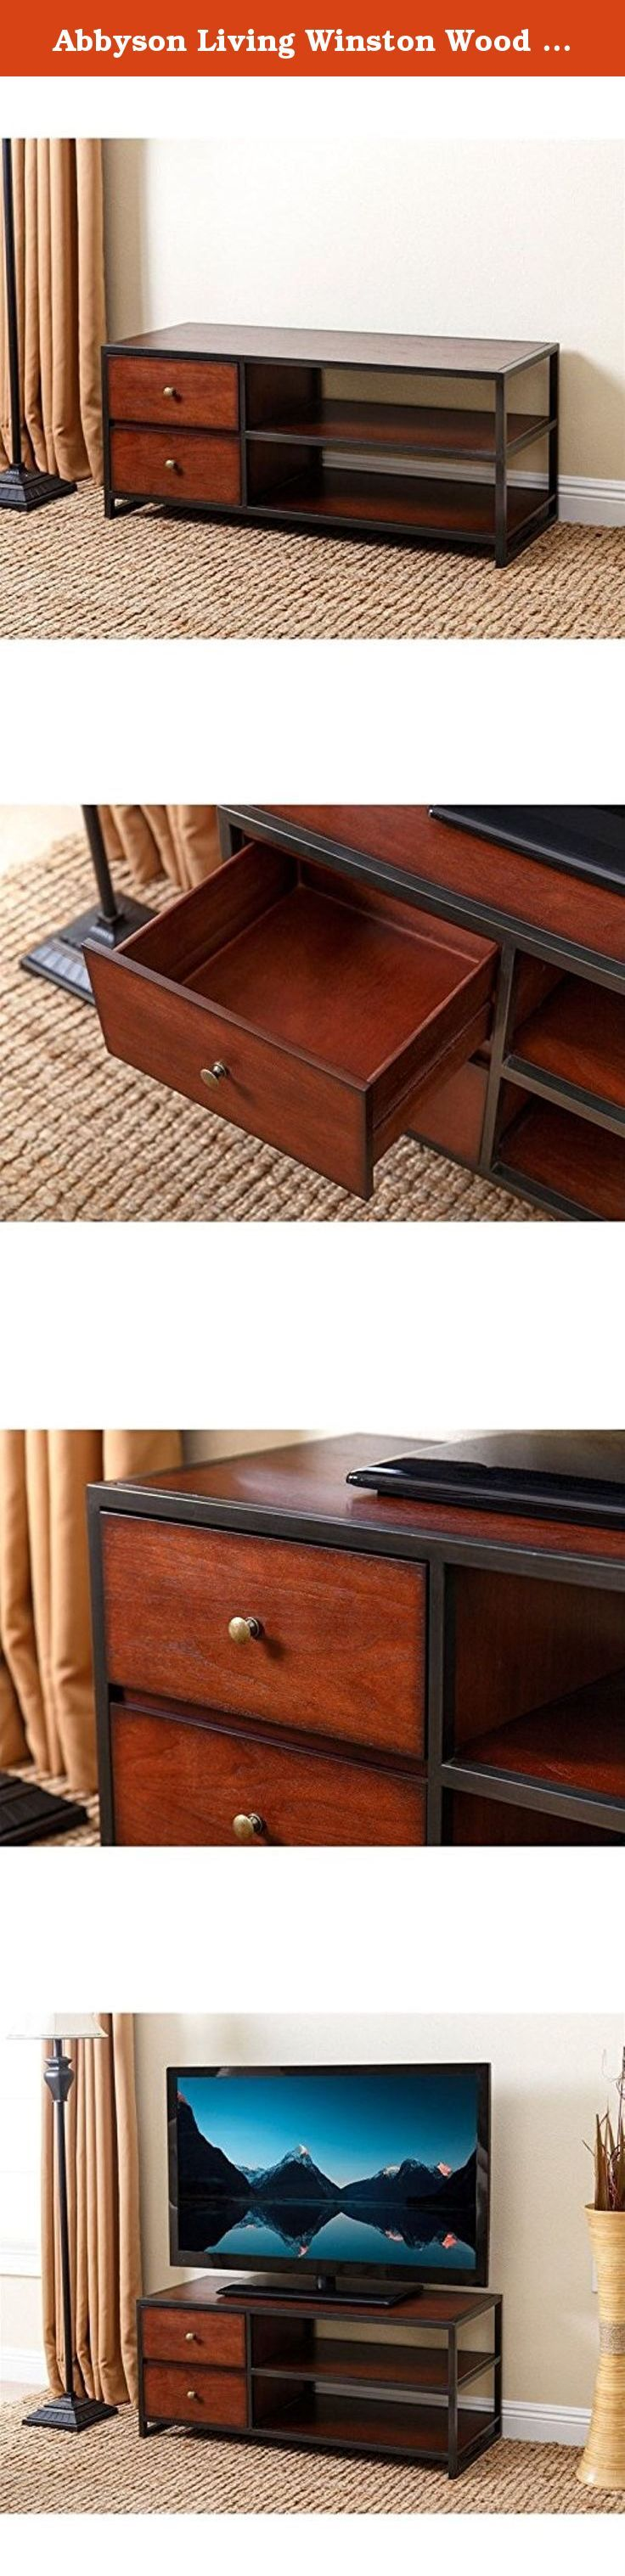 Abbyson Living Winston Wood 42-inch TV Stand. Sure to enhance any living room or entertainment space, the Abbyson Living Winston Small TV Stand features durable wood construction. It fits most TVs up to 46 inches. This TV stand is finished in coffee brown with black trim for contrast. Two drawers and two shelves provide storage space for media components. About Abbyson Based in California, Abbyson has been America's leading home lifestyle furnishings brand since 1989. Following a mission...